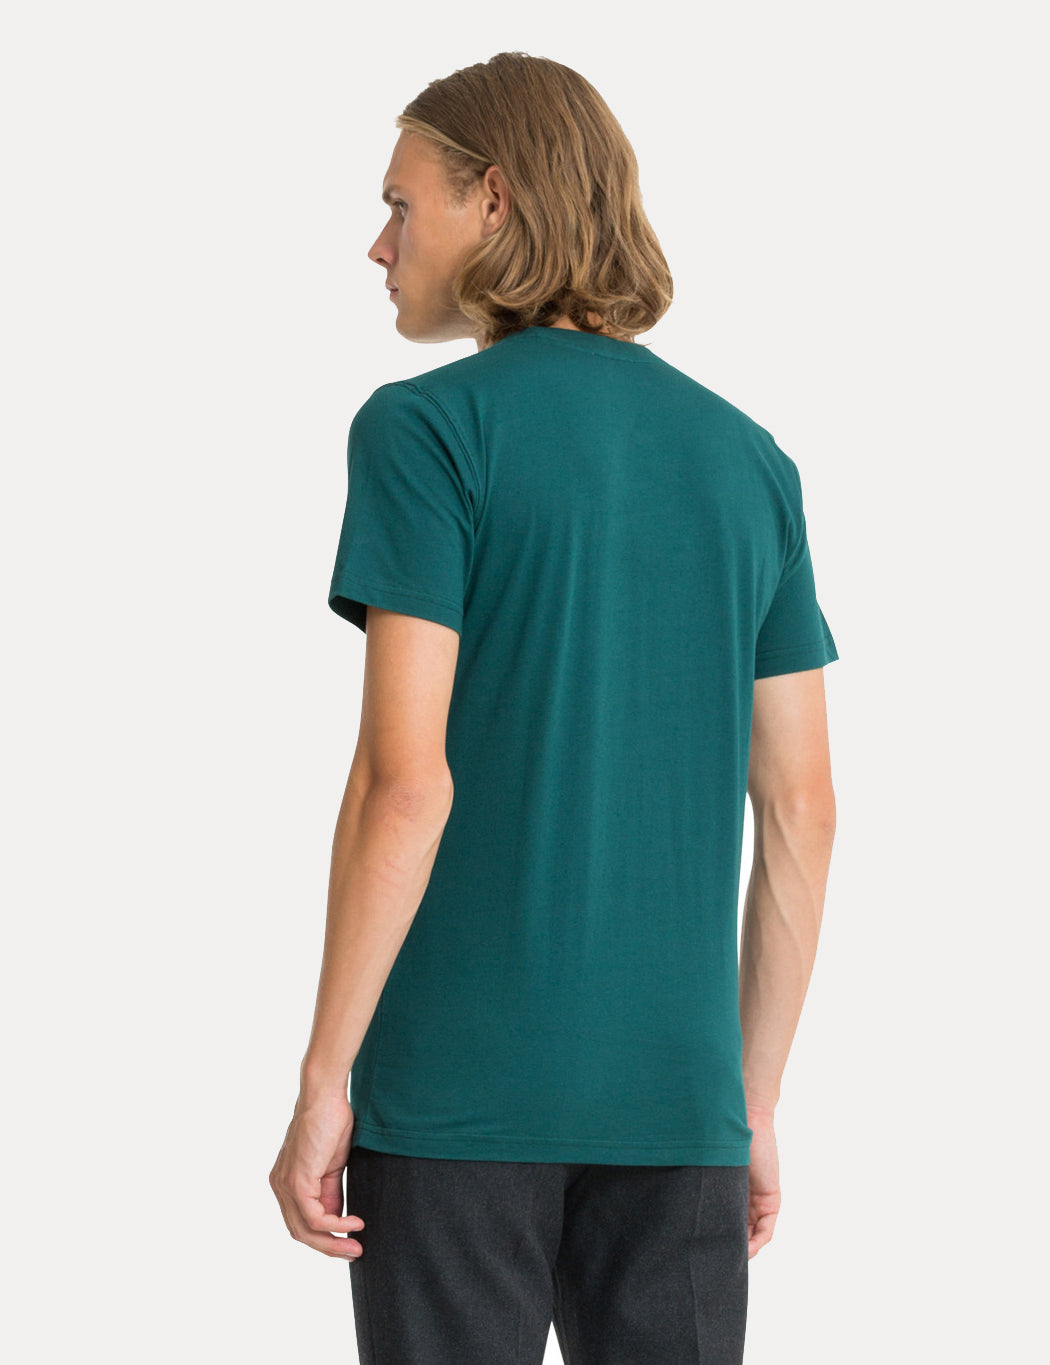 Norse Projects Niels Standard T-Shirt - Quartz Green